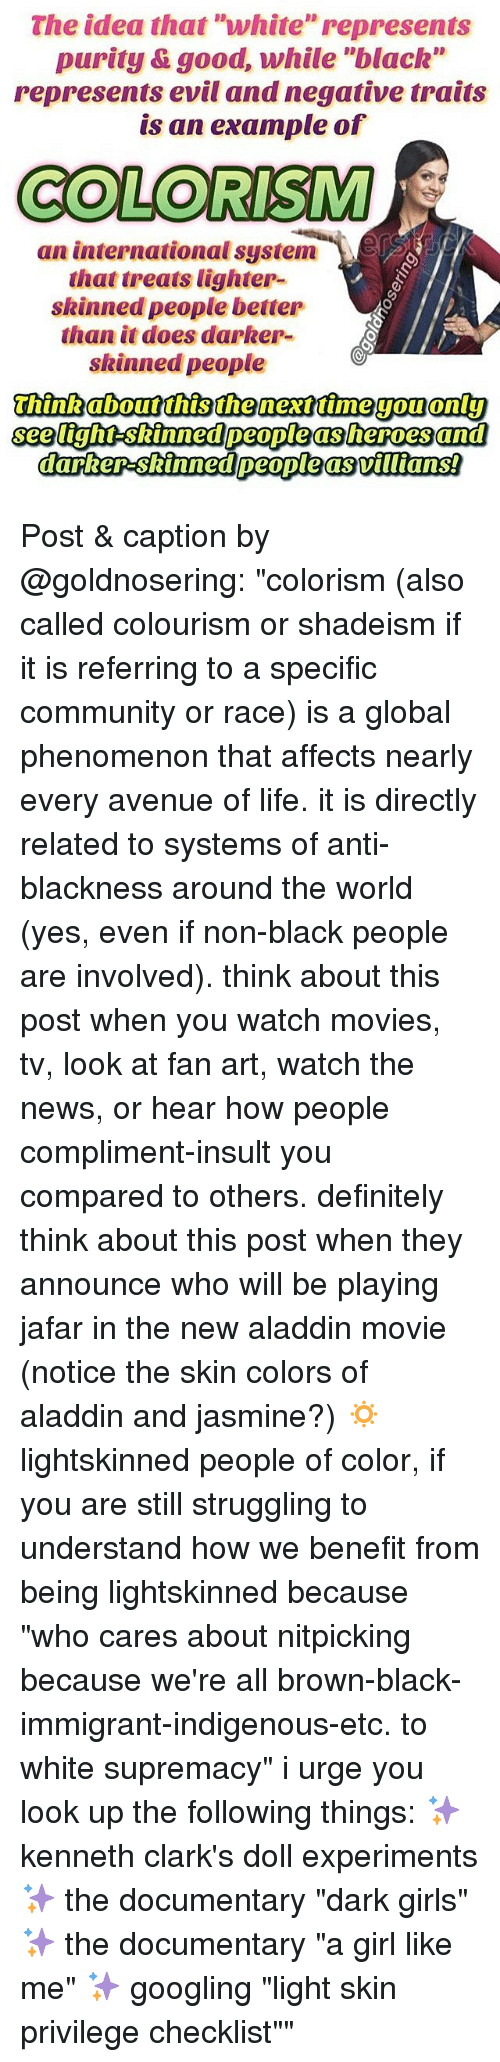 "Aladdin, Community, and Definitely: The idea that ""white"" represents  purity &good, while ""black""  represents evil and negative traits  is an example of  COLORISM  an international system-)、ESS  that treats lighter-  skinned people better  than it does darker-  skinned people  see tight-skinned people as heroes and Post & caption by @goldnosering: ""colorism (also called colourism or shadeism if it is referring to a specific community or race) is a global phenomenon that affects nearly every avenue of life. it is directly related to systems of anti-blackness around the world (yes, even if non-black people are involved). think about this post when you watch movies, tv, look at fan art, watch the news, or hear how people compliment-insult you compared to others. definitely think about this post when they announce who will be playing jafar in the new aladdin movie (notice the skin colors of aladdin and jasmine?) 🔅 lightskinned people of color, if you are still struggling to understand how we benefit from being lightskinned because ""who cares about nitpicking because we're all brown-black-immigrant-indigenous-etc. to white supremacy"" i urge you look up the following things: ✨ kenneth clark's doll experiments ✨ the documentary ""dark girls"" ✨ the documentary ""a girl like me"" ✨ googling ""light skin privilege checklist"""""